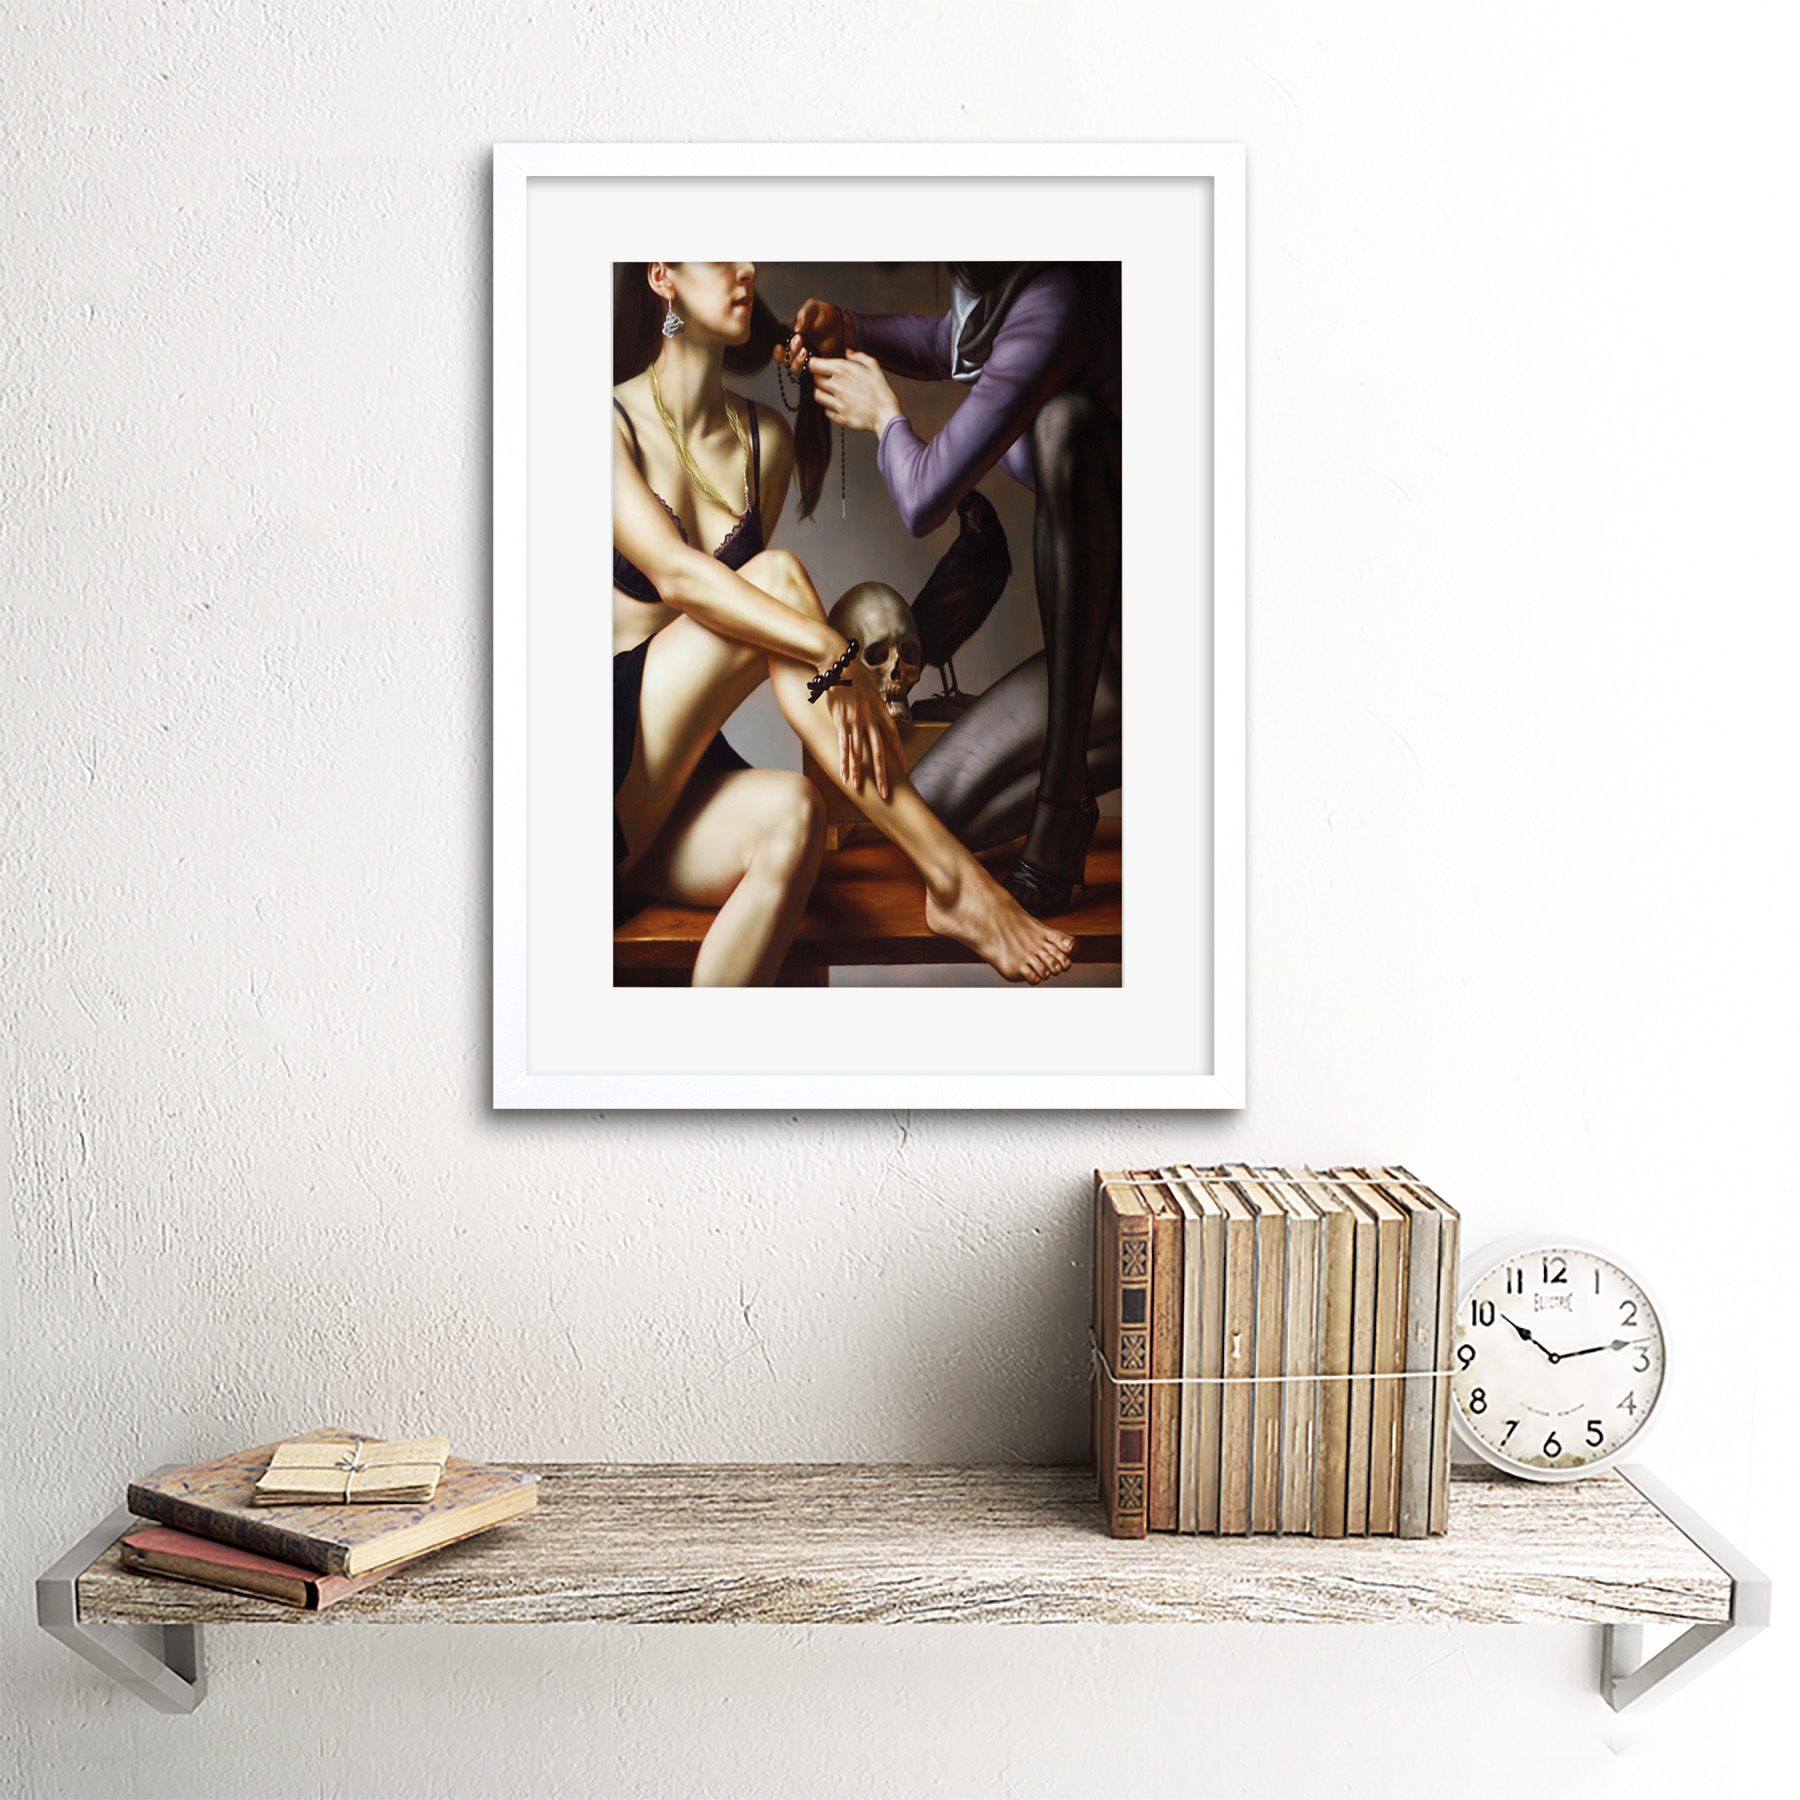 Painting-Balcar-Entering-Renaissance-Framed-Art-Print-12x16-Inch 縮圖 22